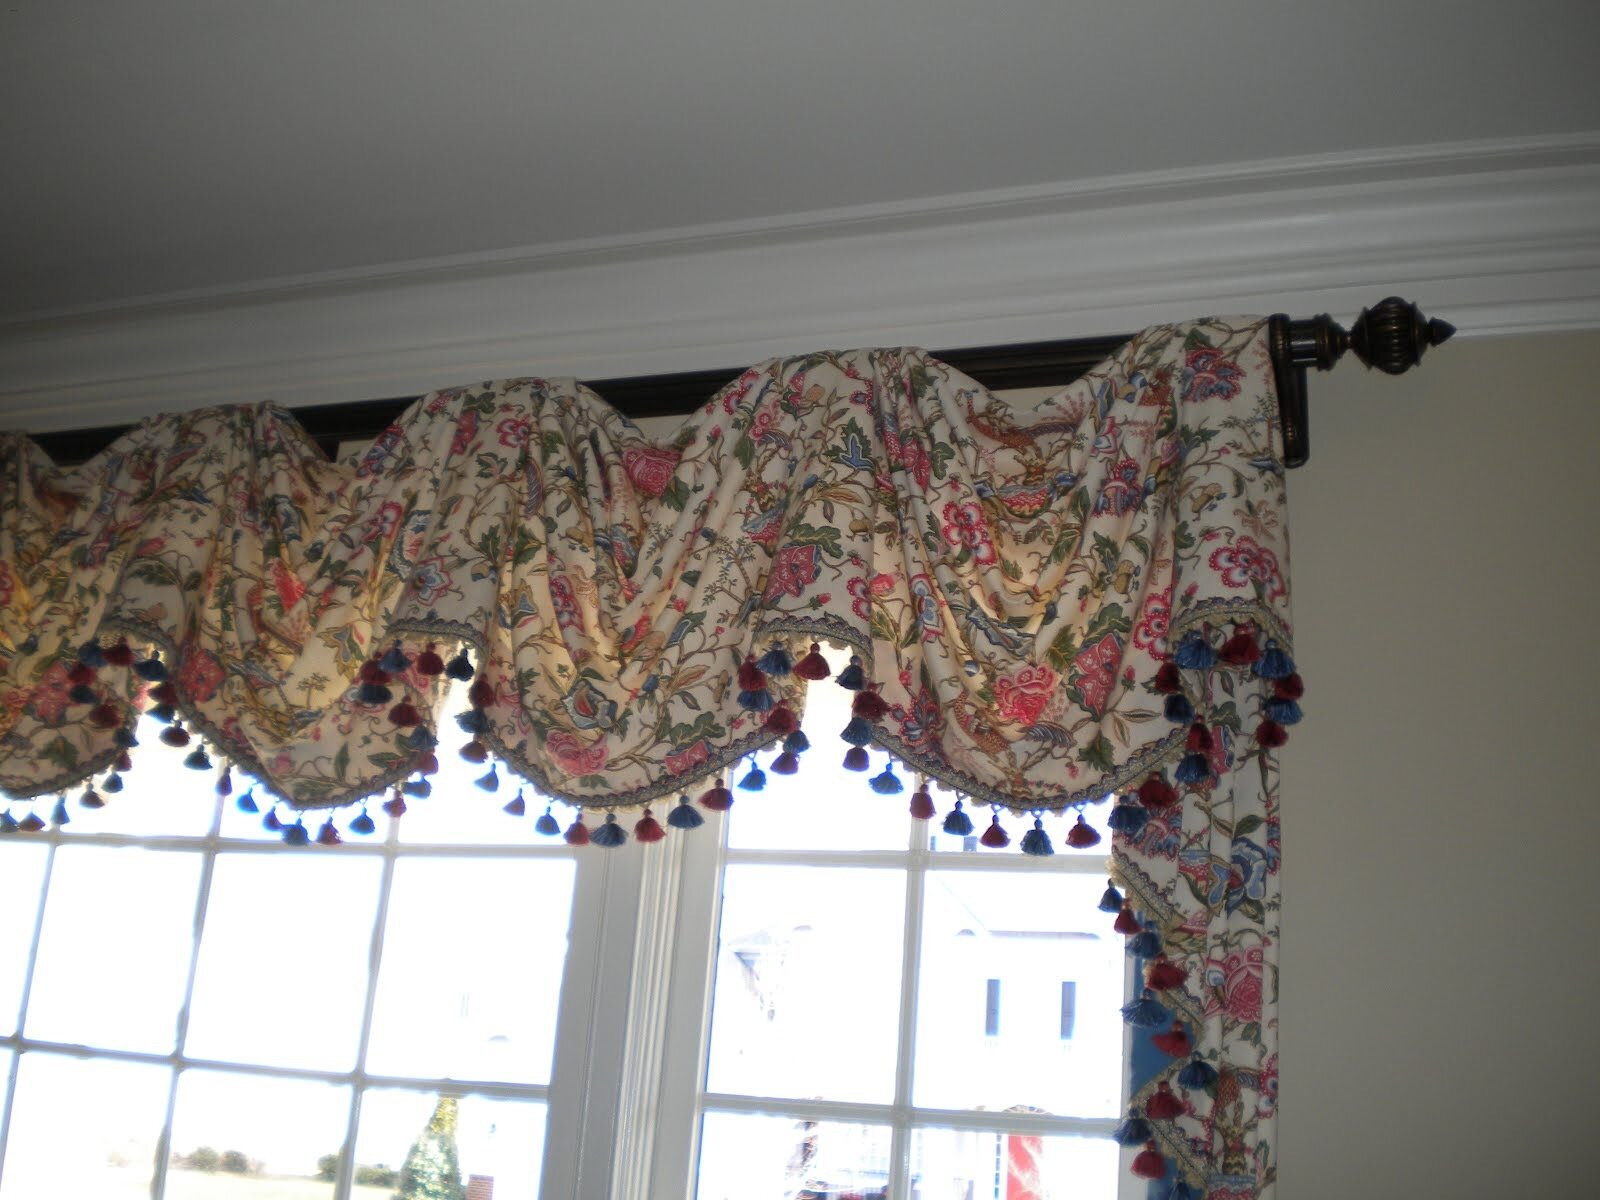 Cute Living Room Valances for Your Home Decorating Ideas: Living Room Valances | Window Curtains Valances | Short Valances